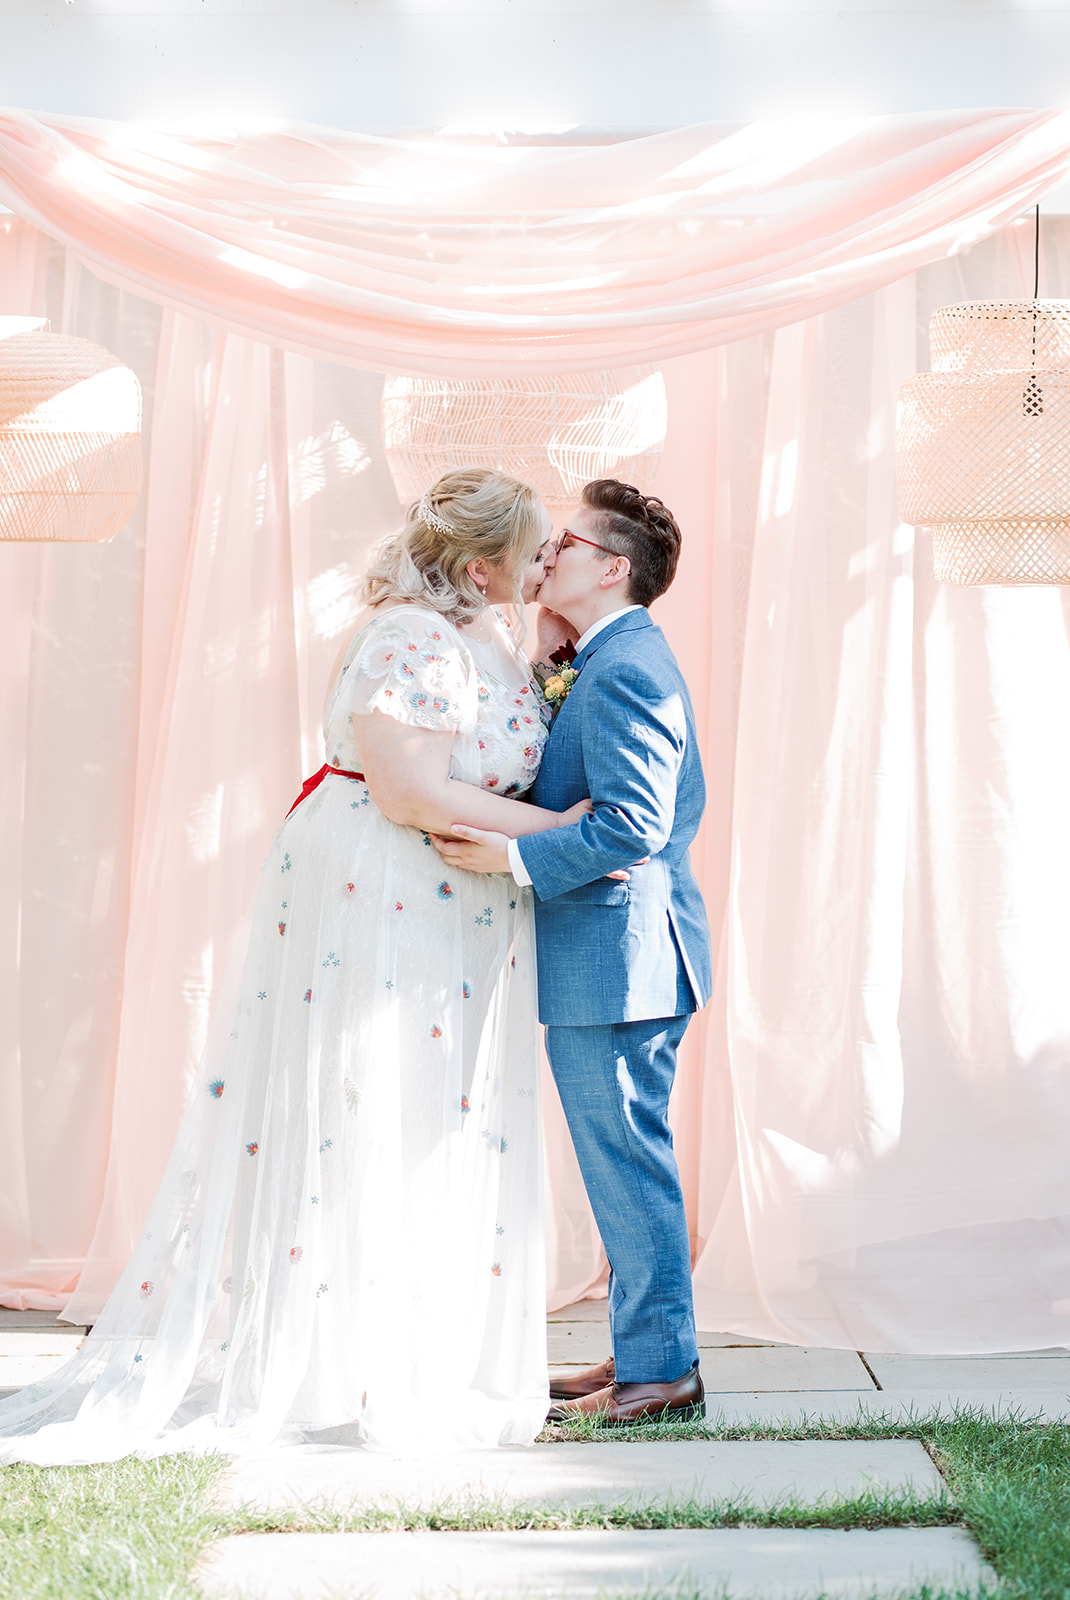 Constance Schiano Photography Ridgefield, CT USA lesbian gay queer couple wedding elopement Dancing With Her online magazine (1)